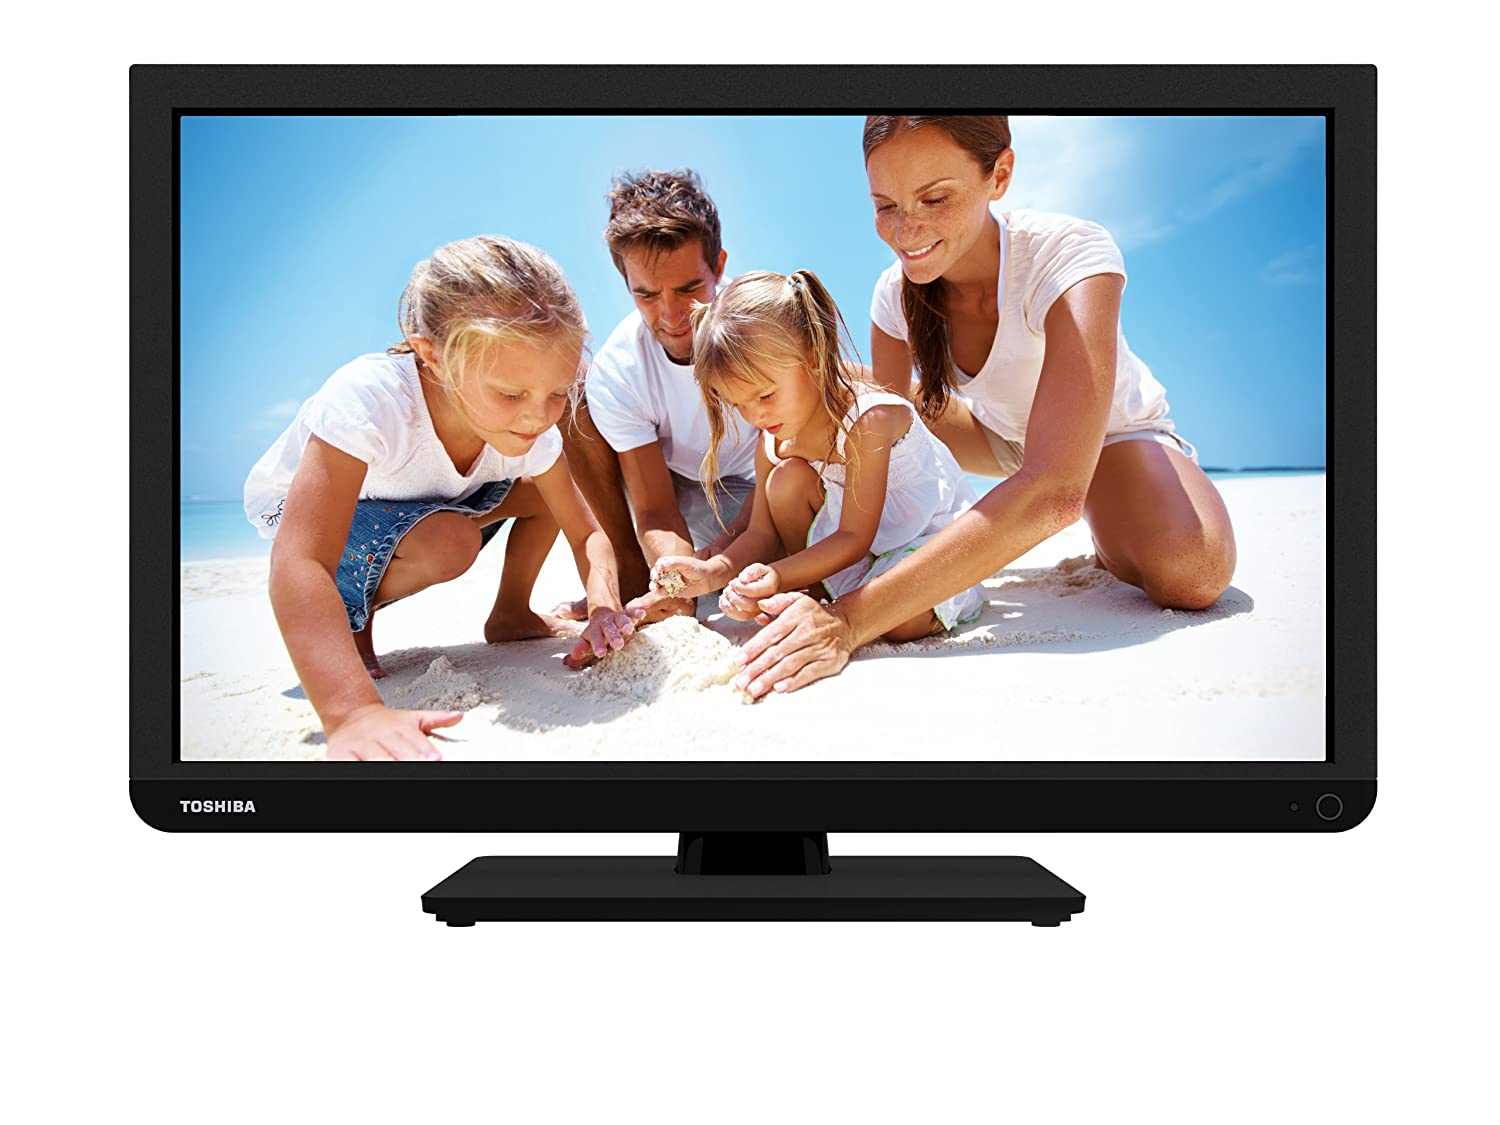 Toshiba 22d1333b 22 Inch Widescreen 1080p Full Hd Led Tv With Built Wiring Diagrams In Dvd Player